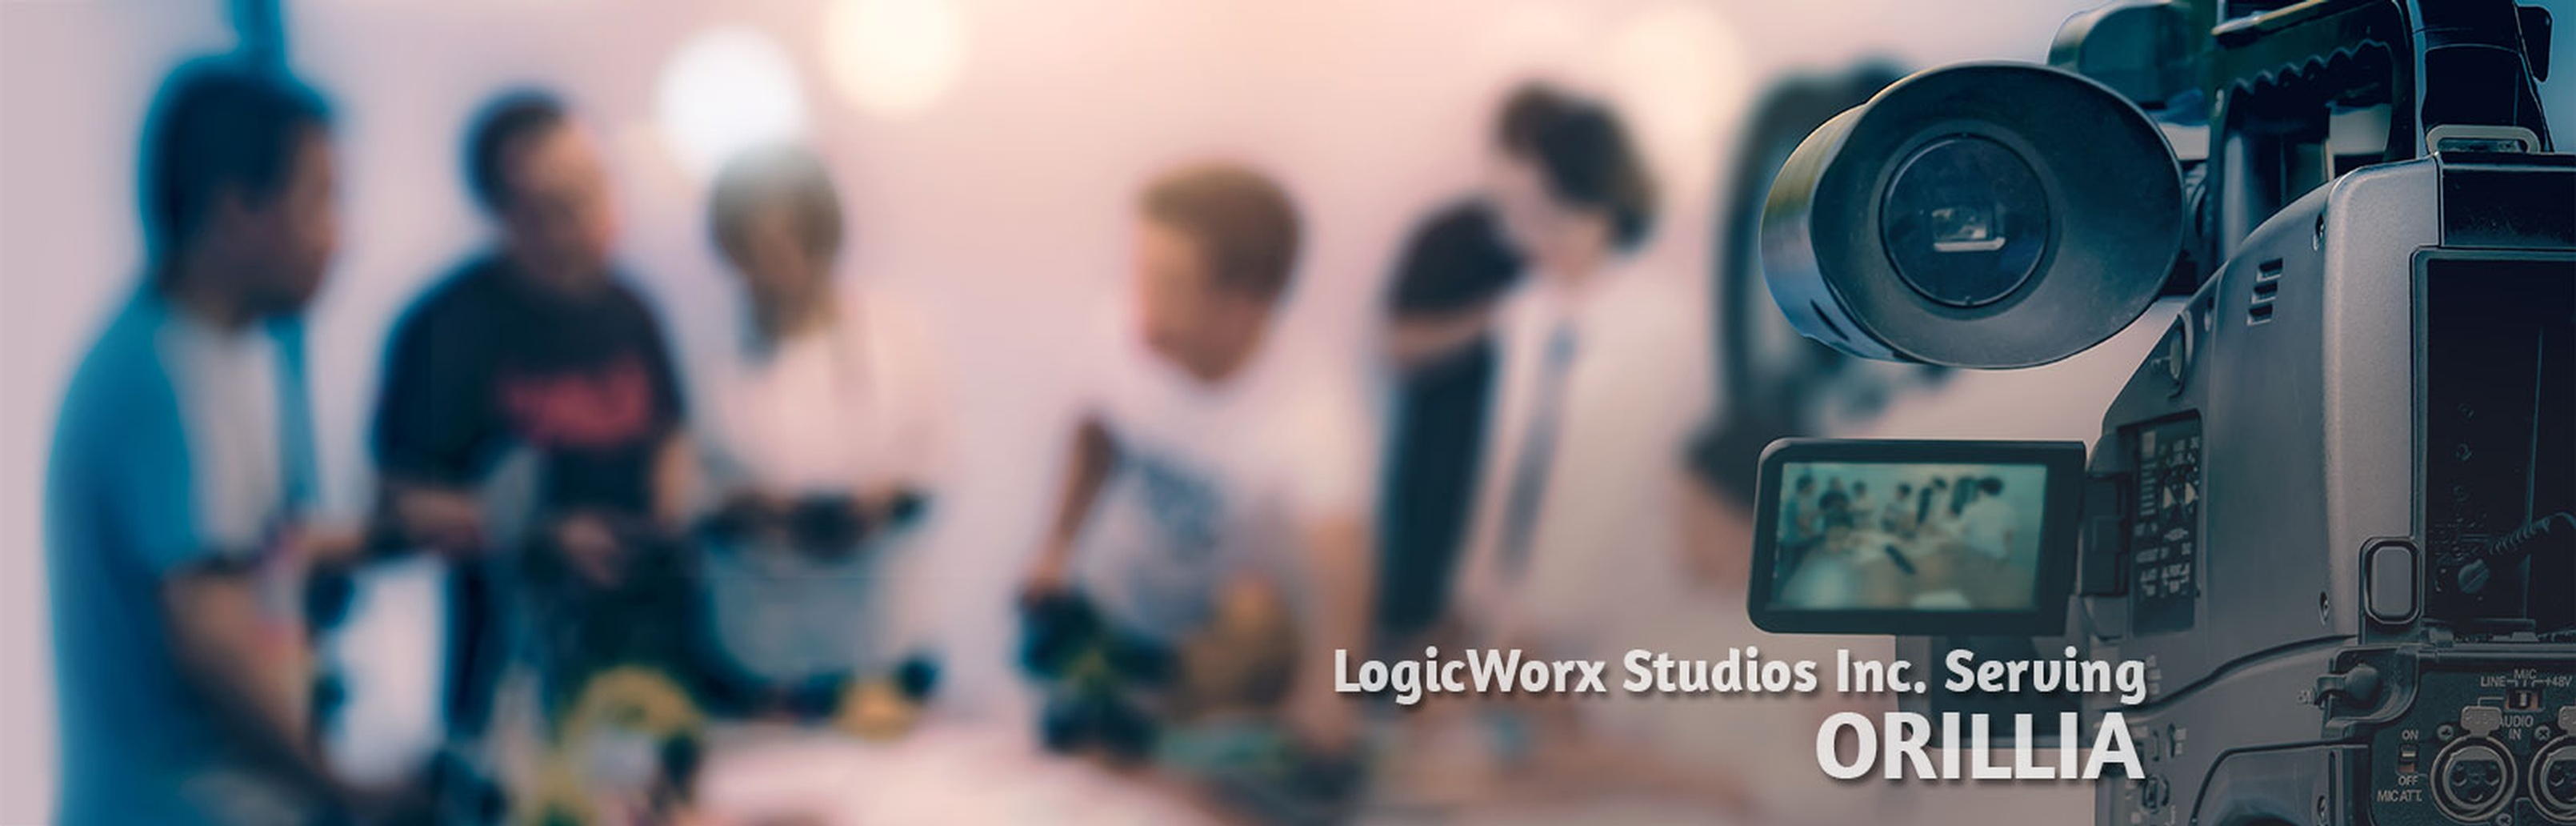 LogicWorx Studios Inc. serving Orillia